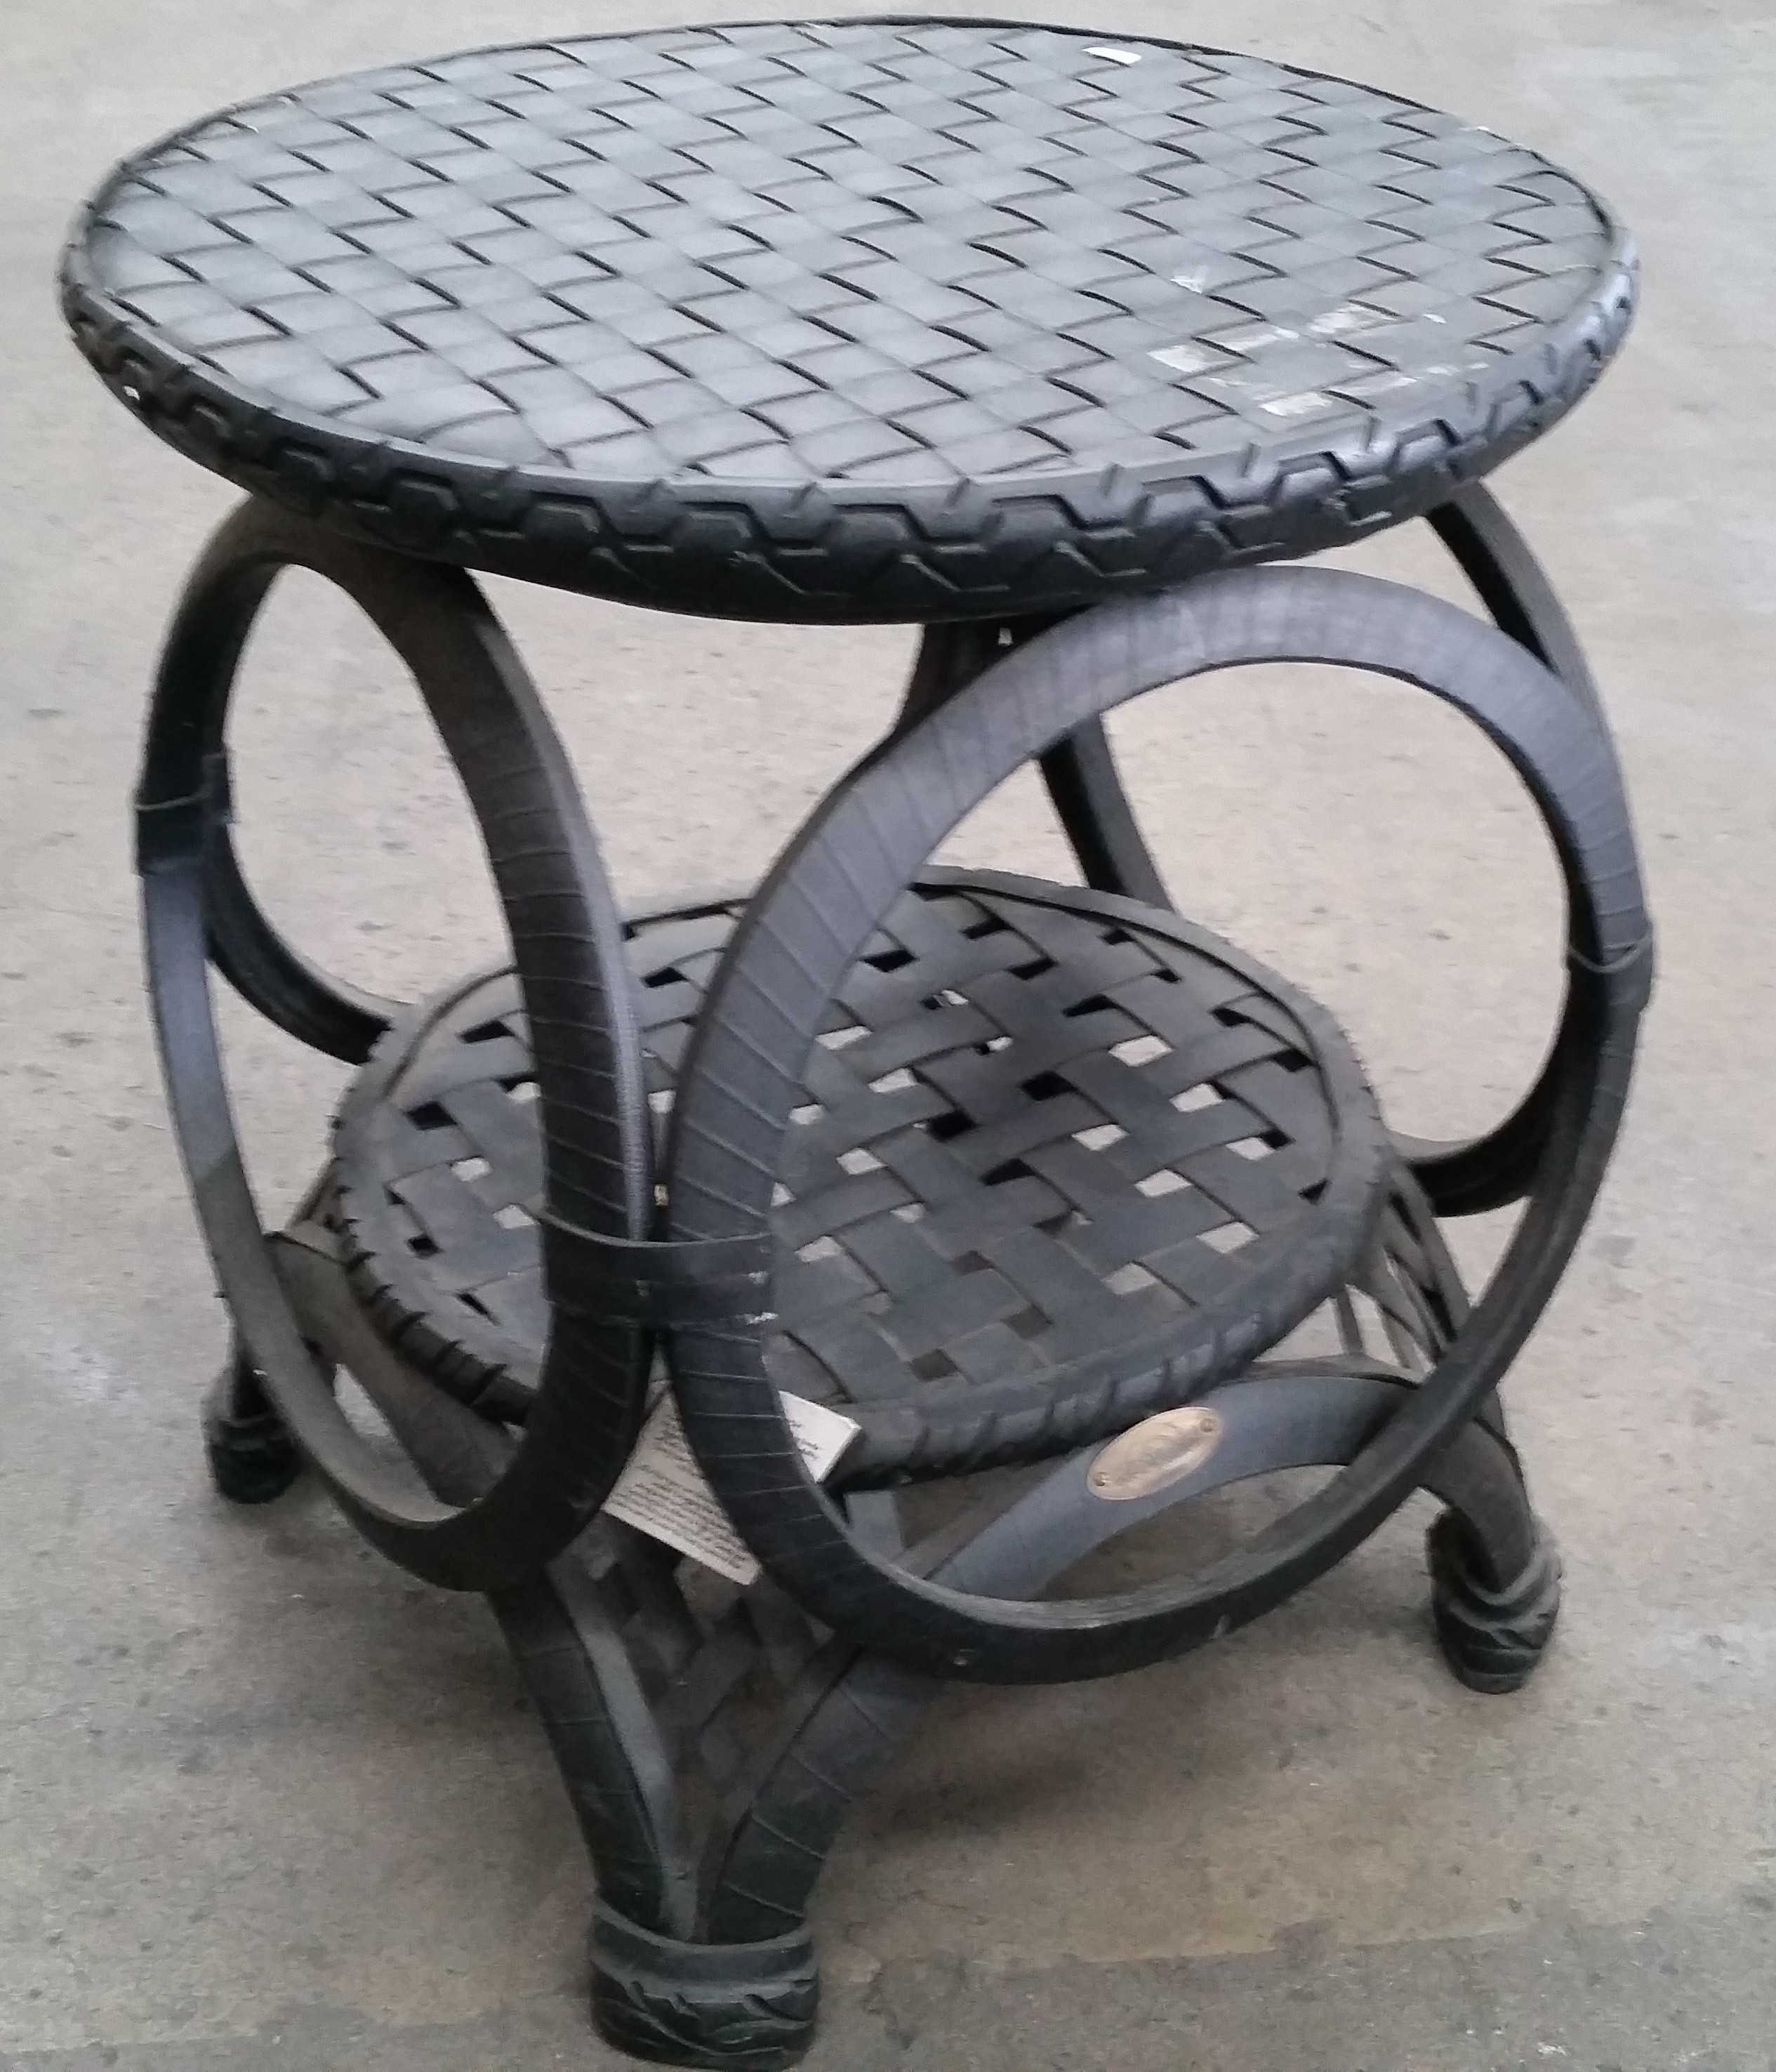 Retyred furniture outdoor table lot 1021760 allbids